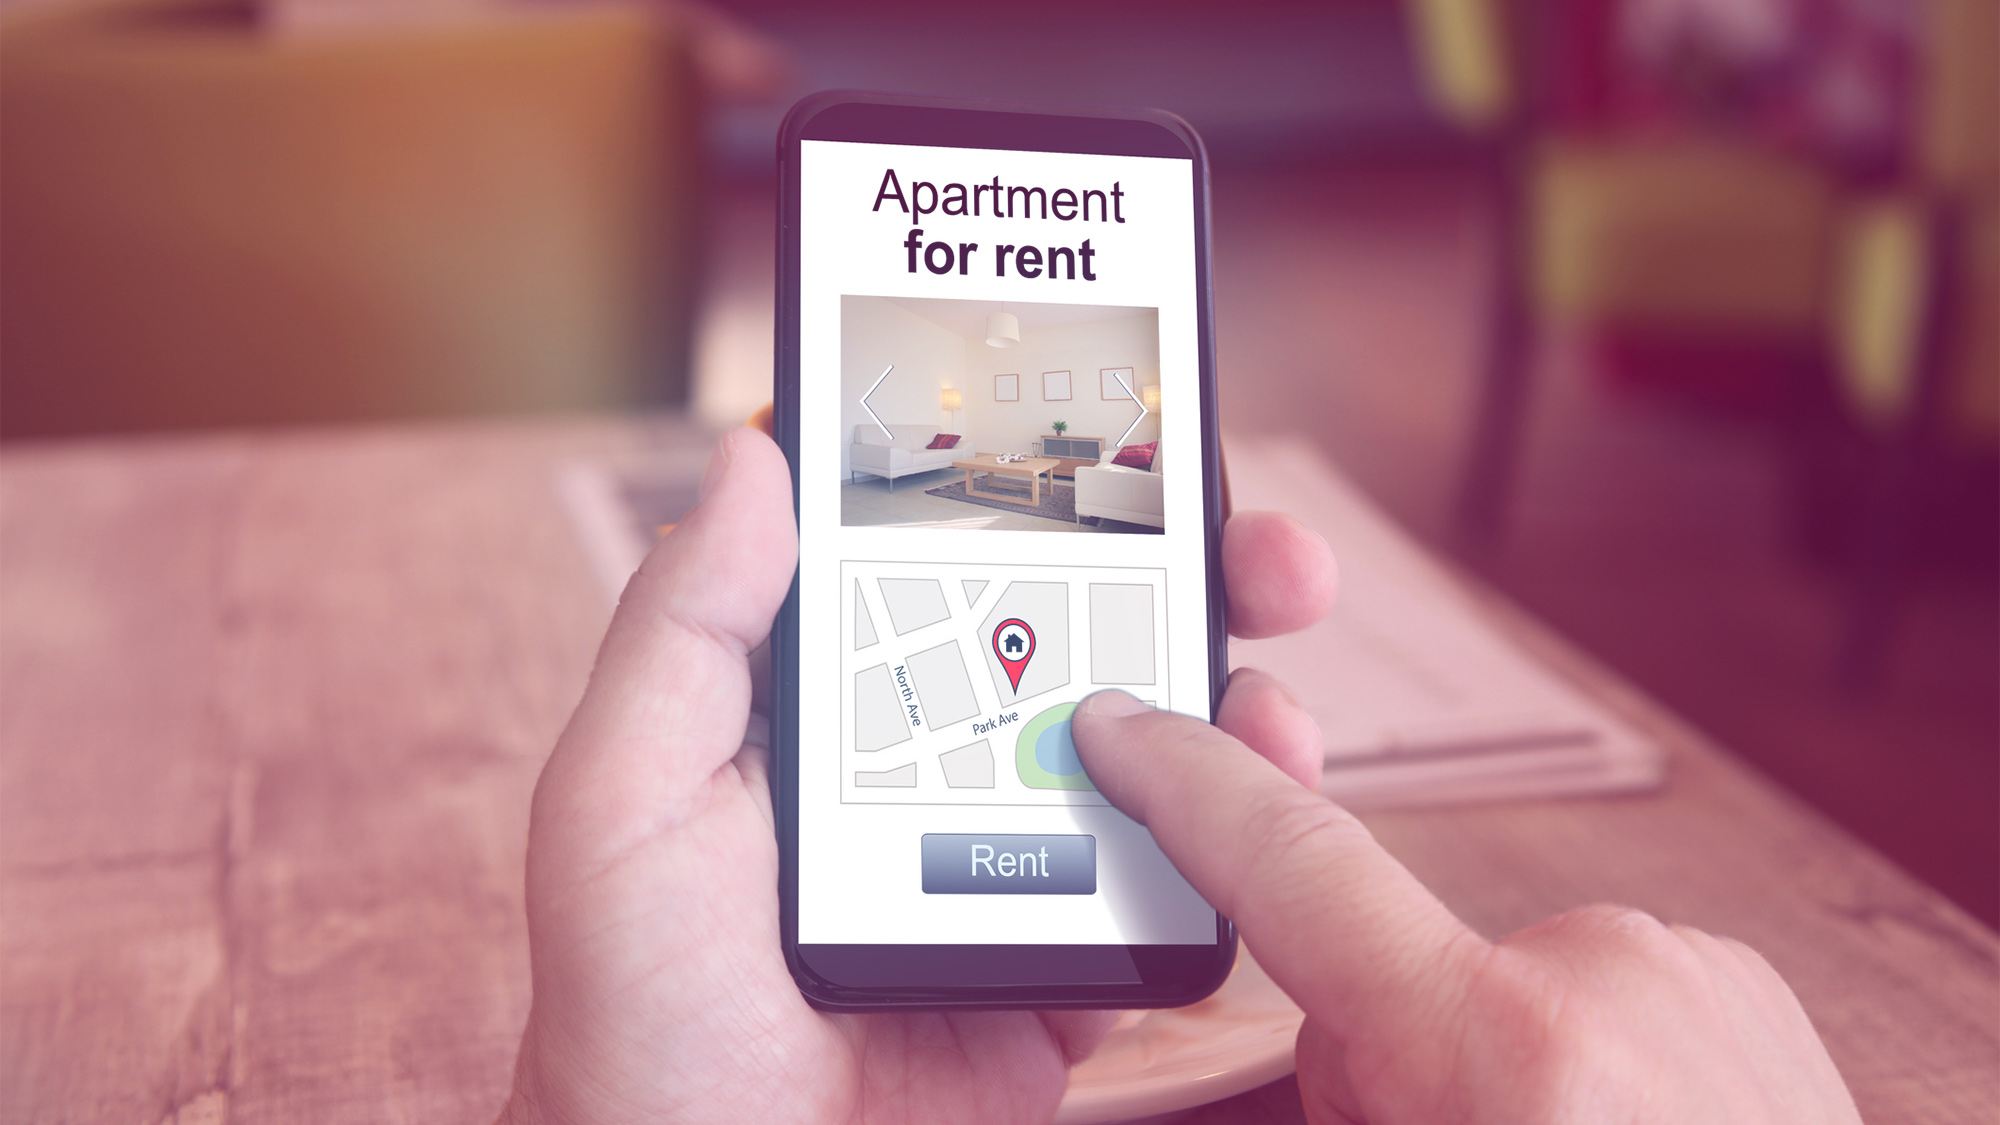 8 Questions to Ask When Searching For an Apartment Virtually